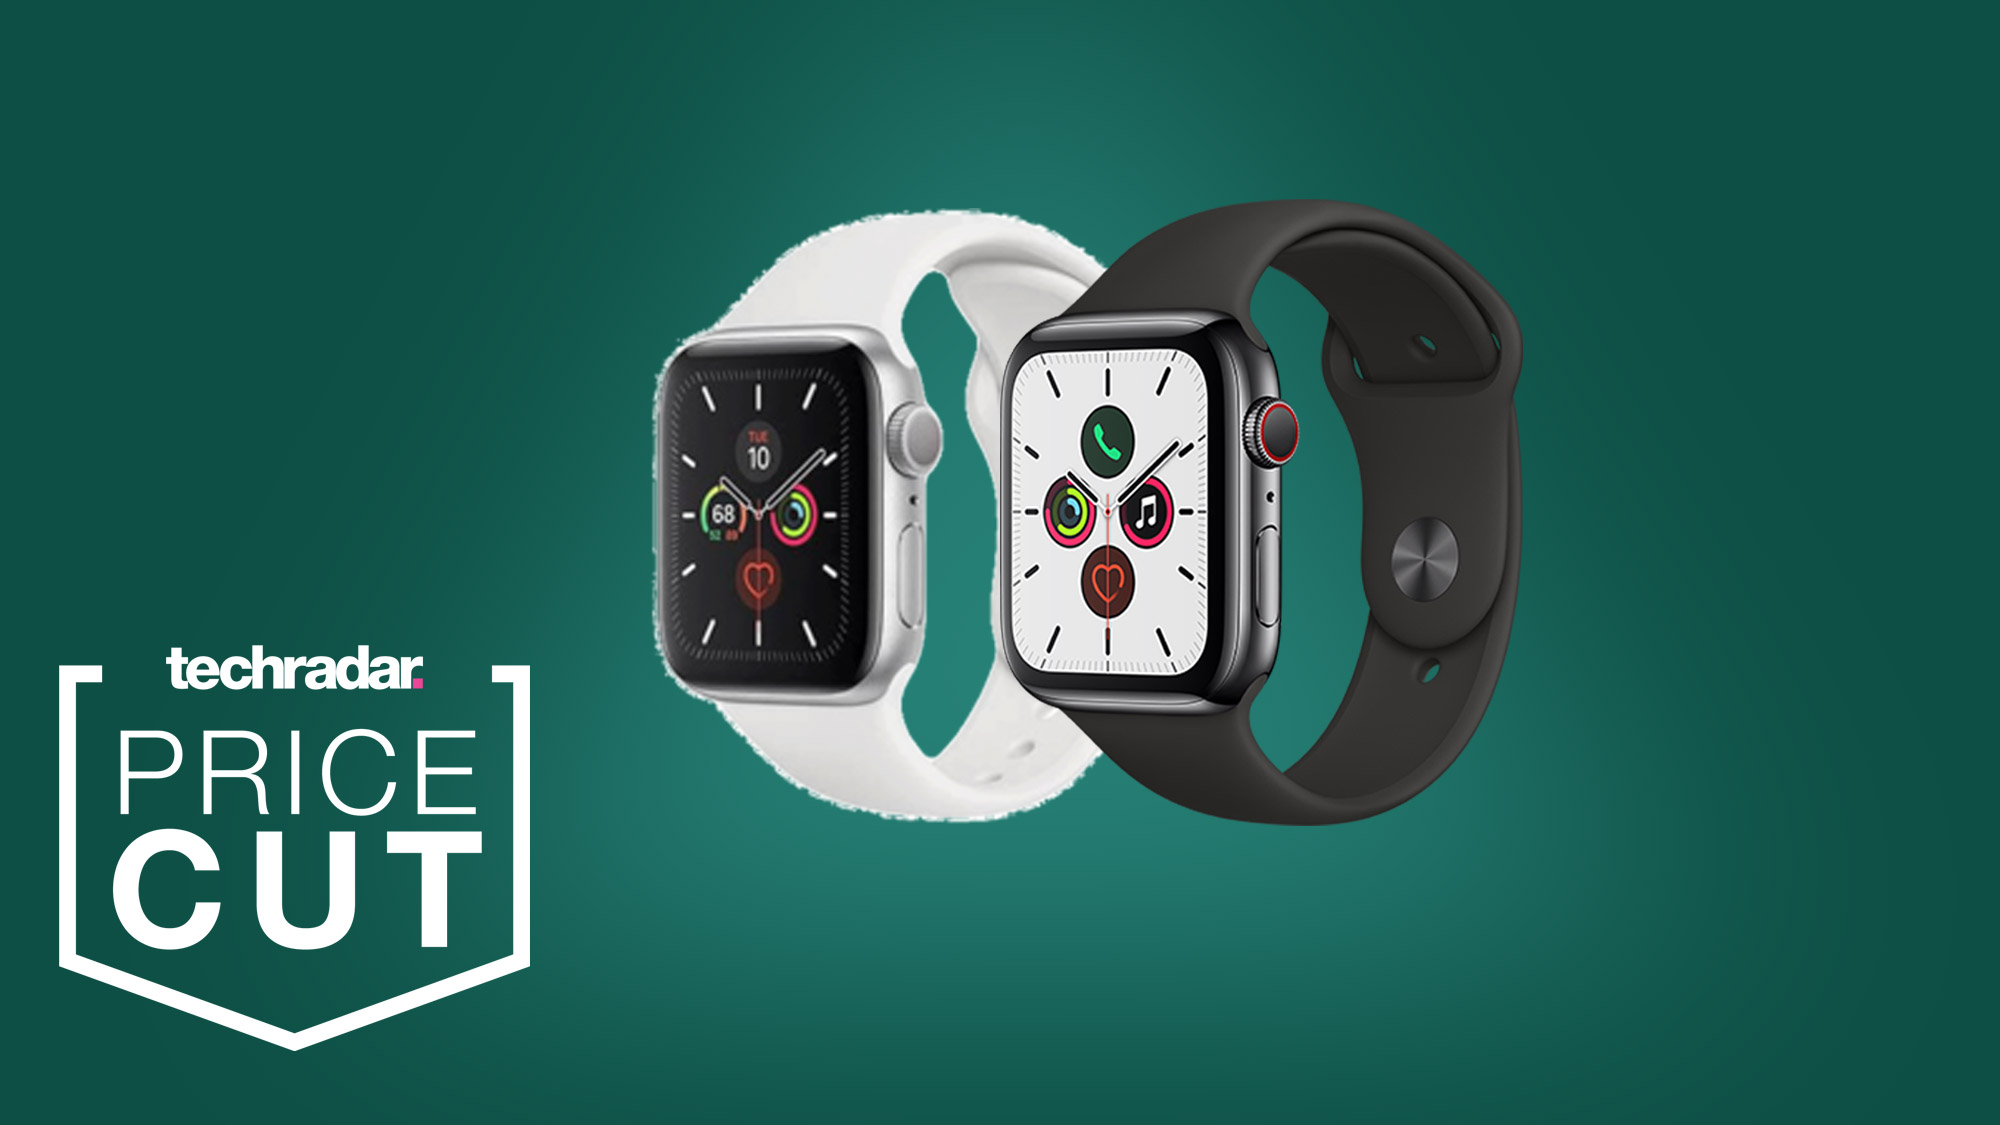 Apple Watch deal: Buy one Apple Watch, get another up to 50% off at Verizon